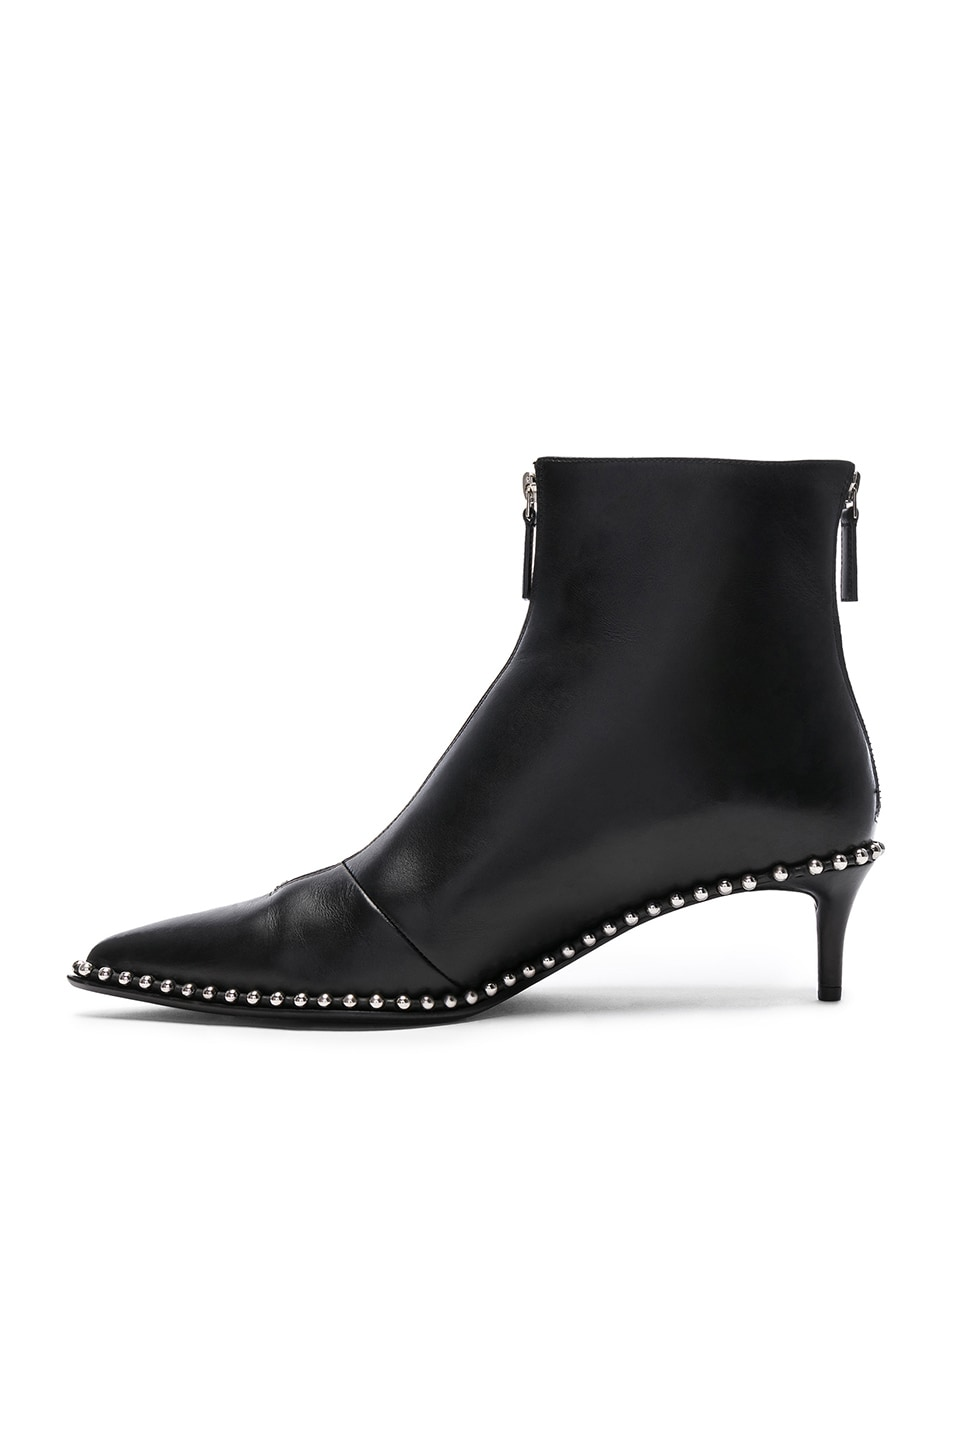 Image 5 of Alexander Wang Leather Eri Low Boots in Black